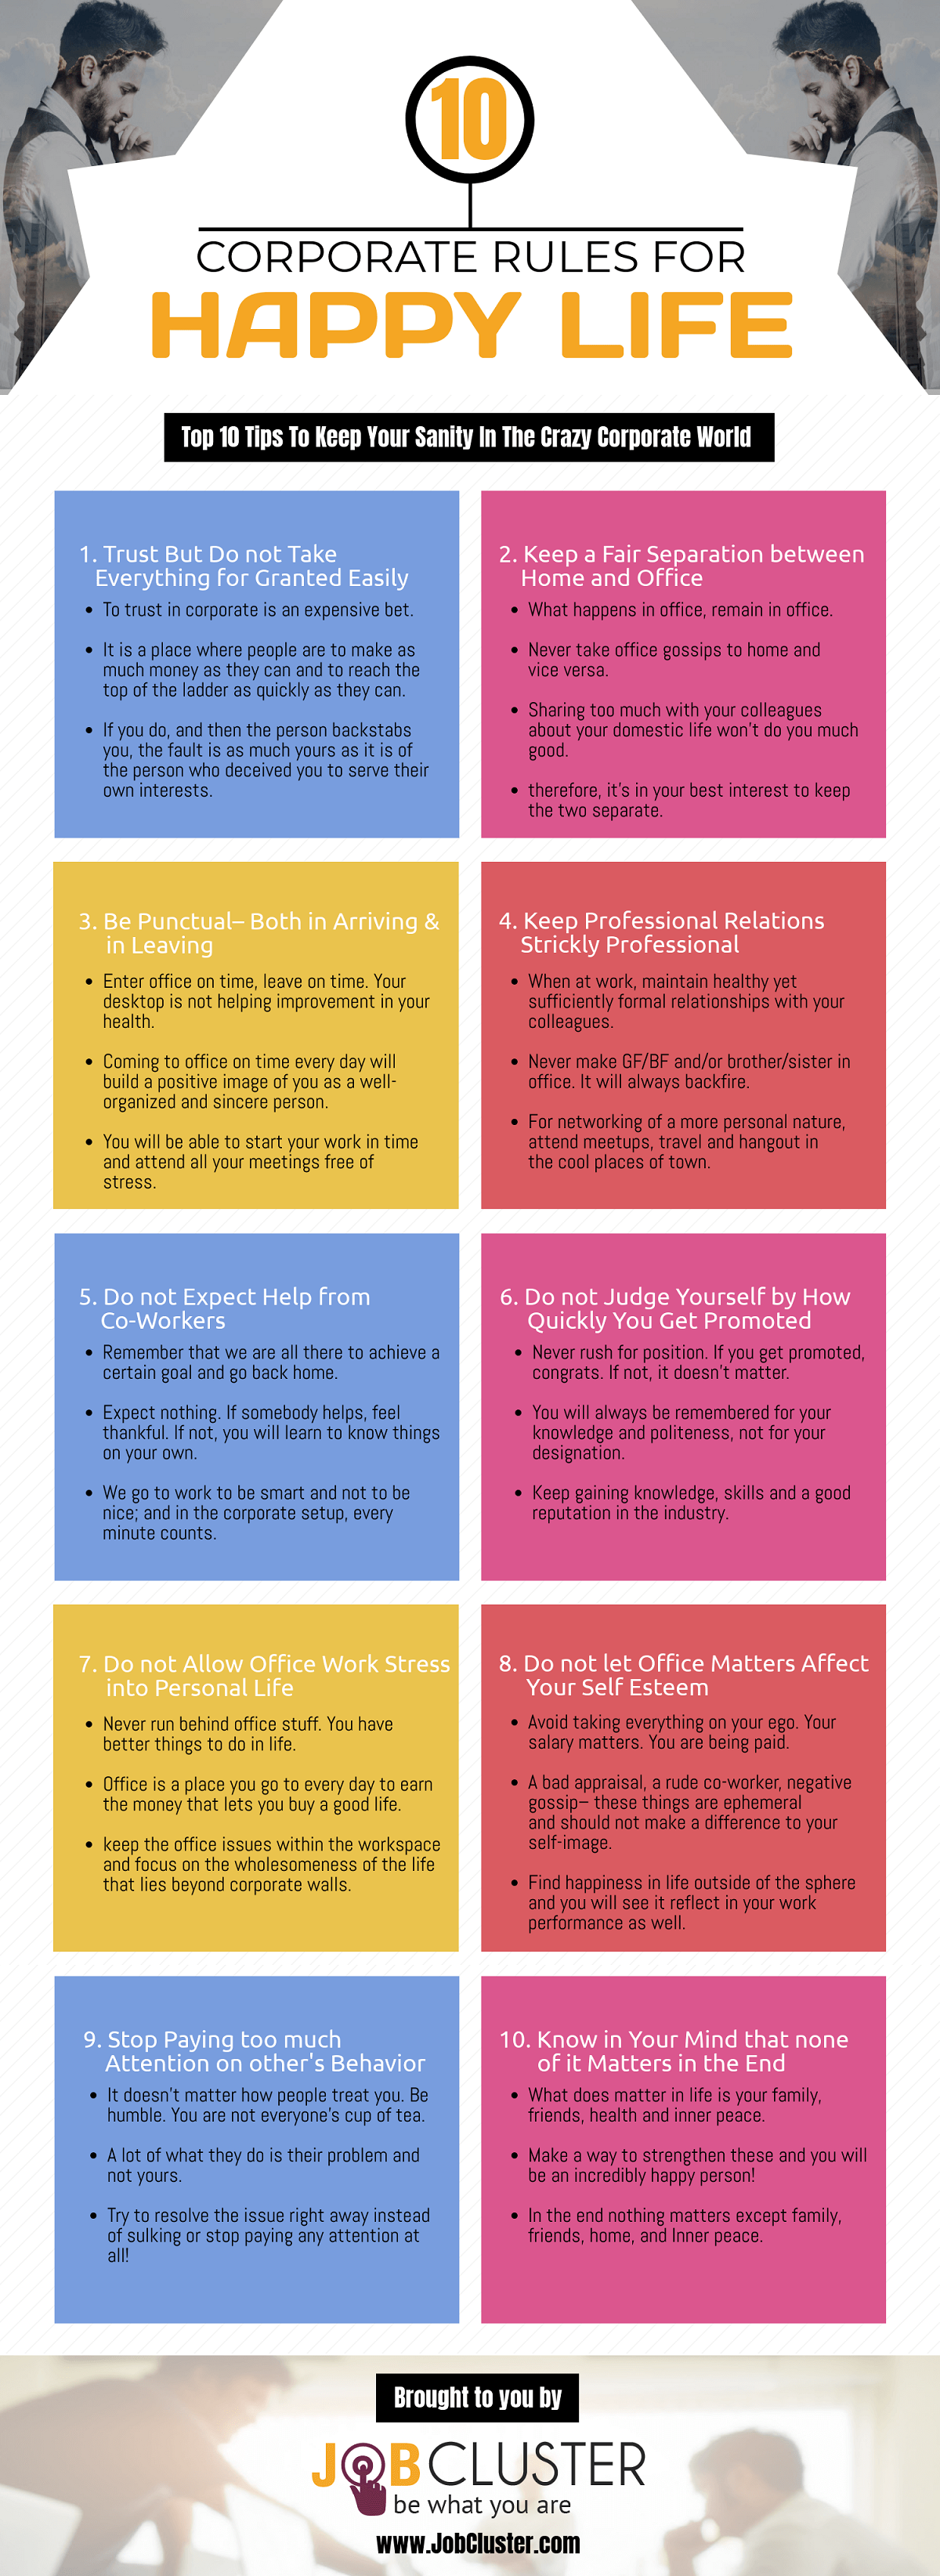 10-corporate-rules-for-a-happy-life-infographic